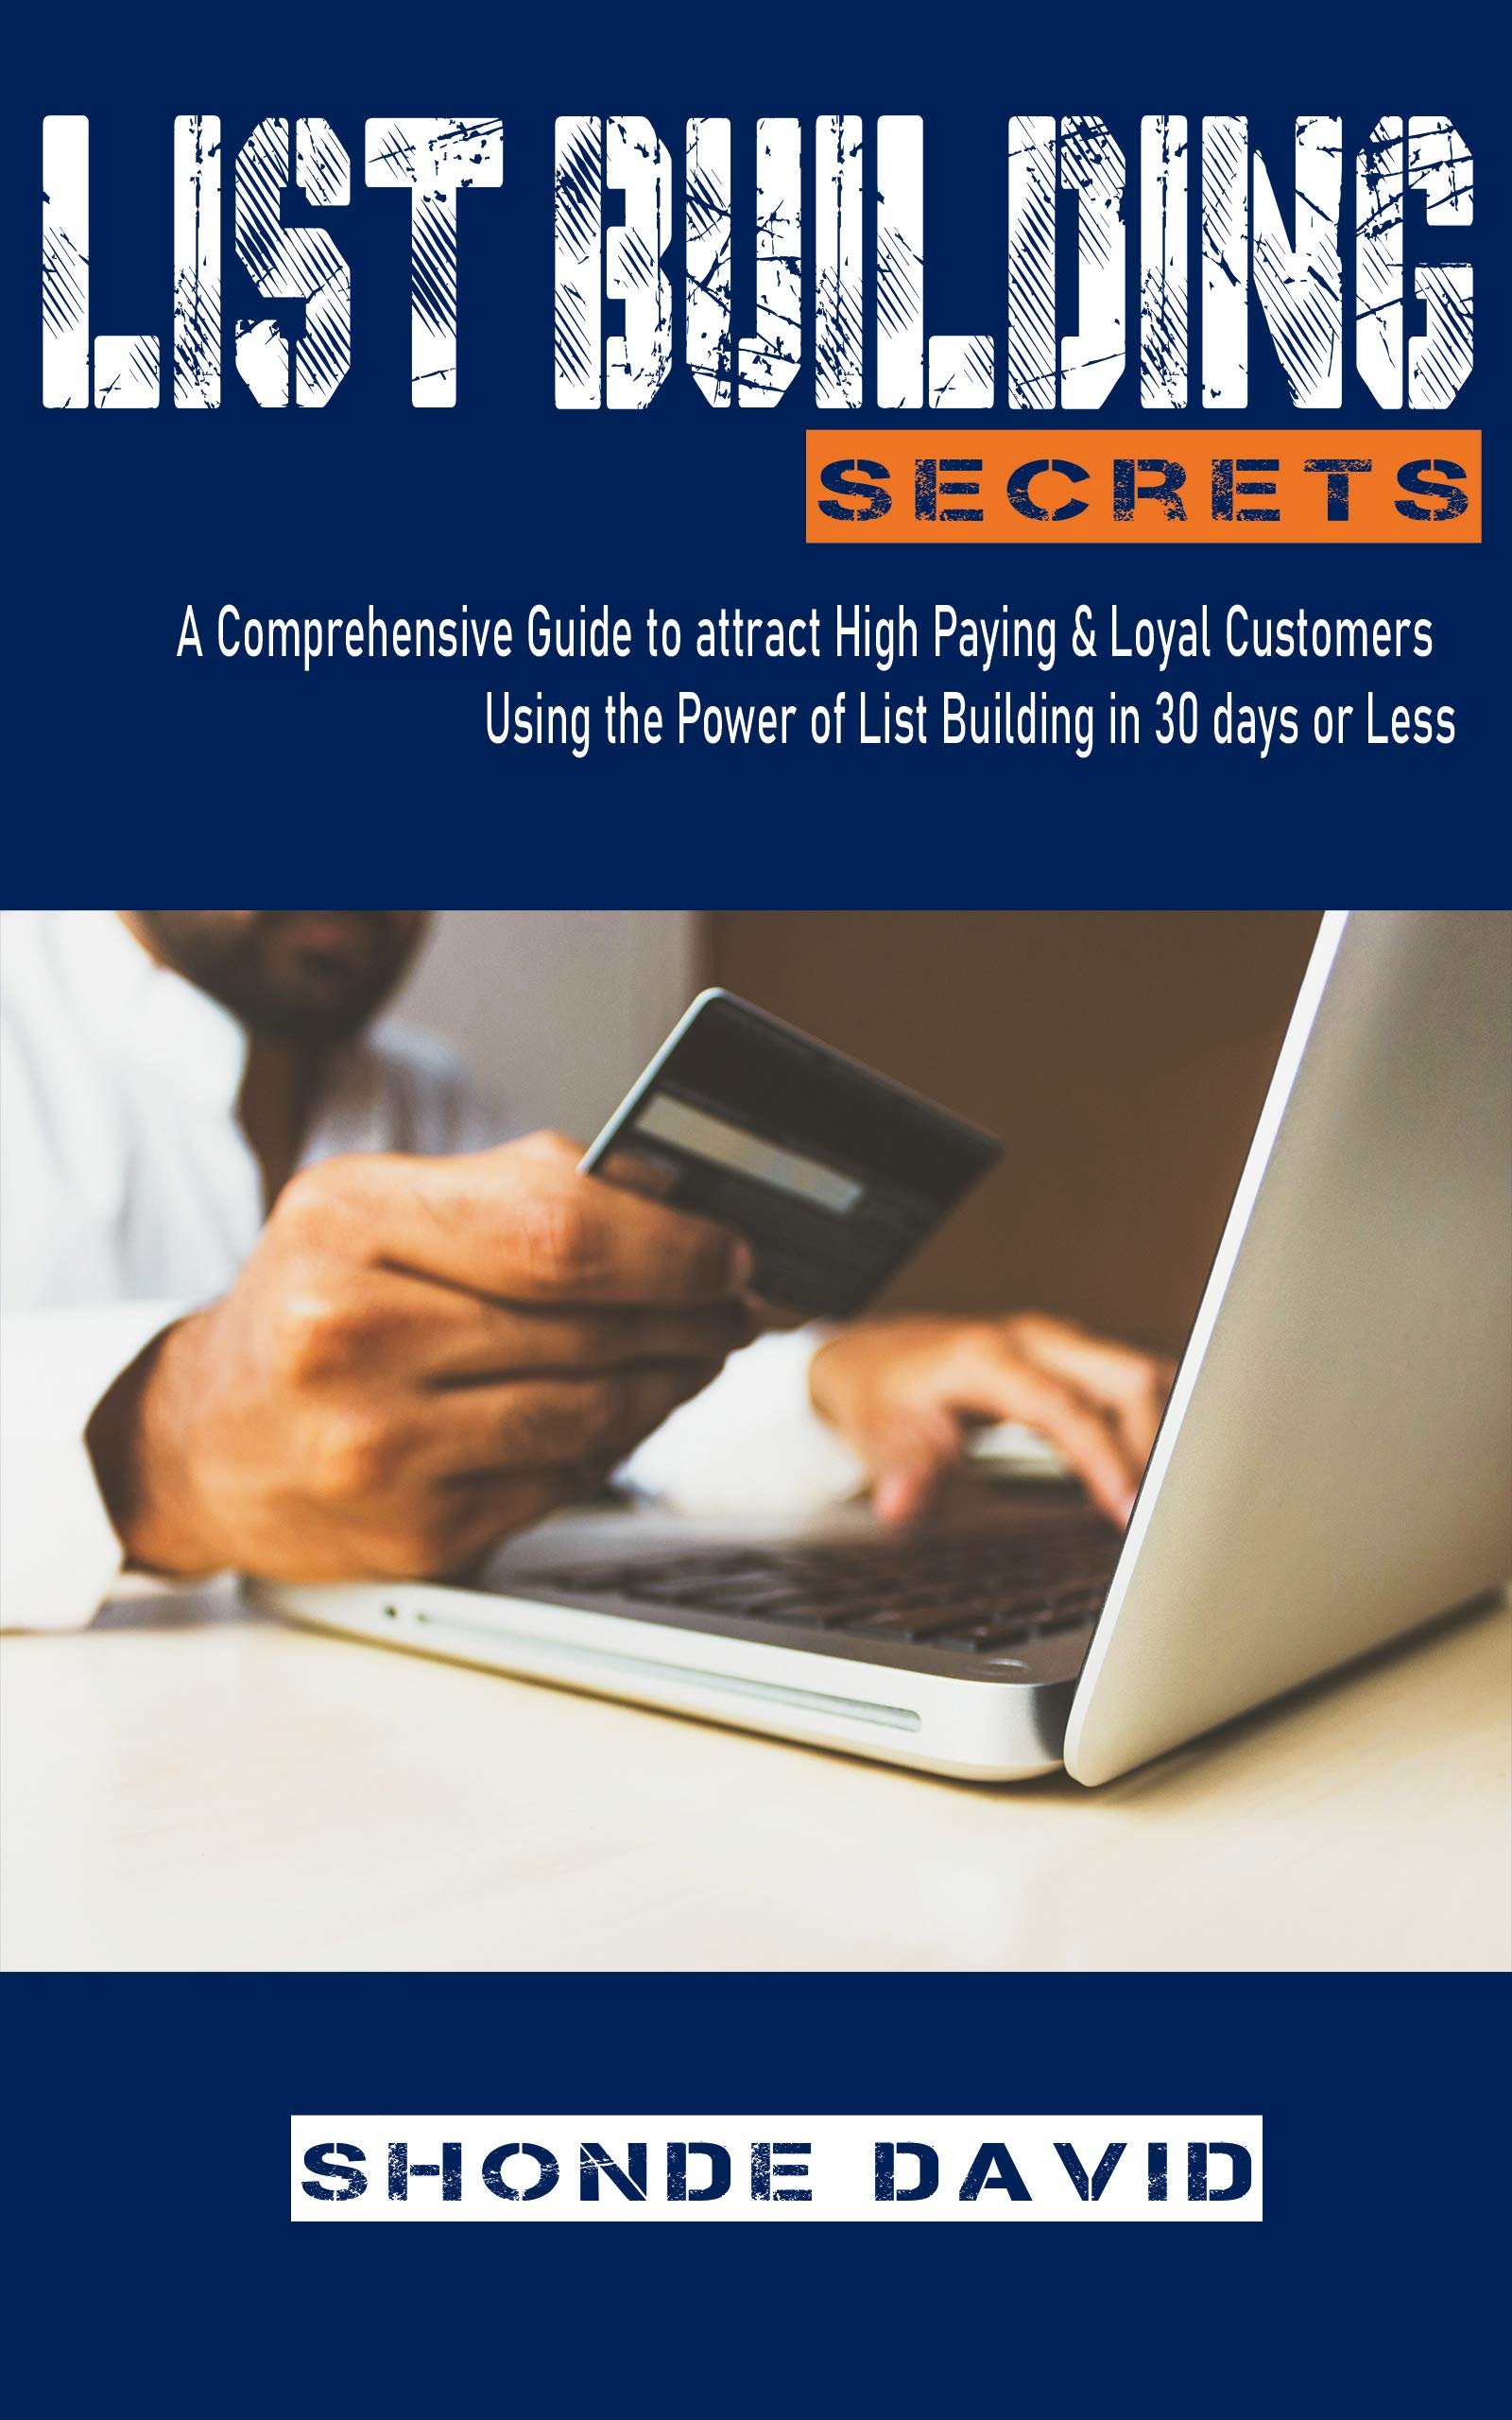 List Building Secrets: A Comprehensive Guide for harnessing the power of List Building to acquire loyal customers in 30 days or Less (Volume Book 1)